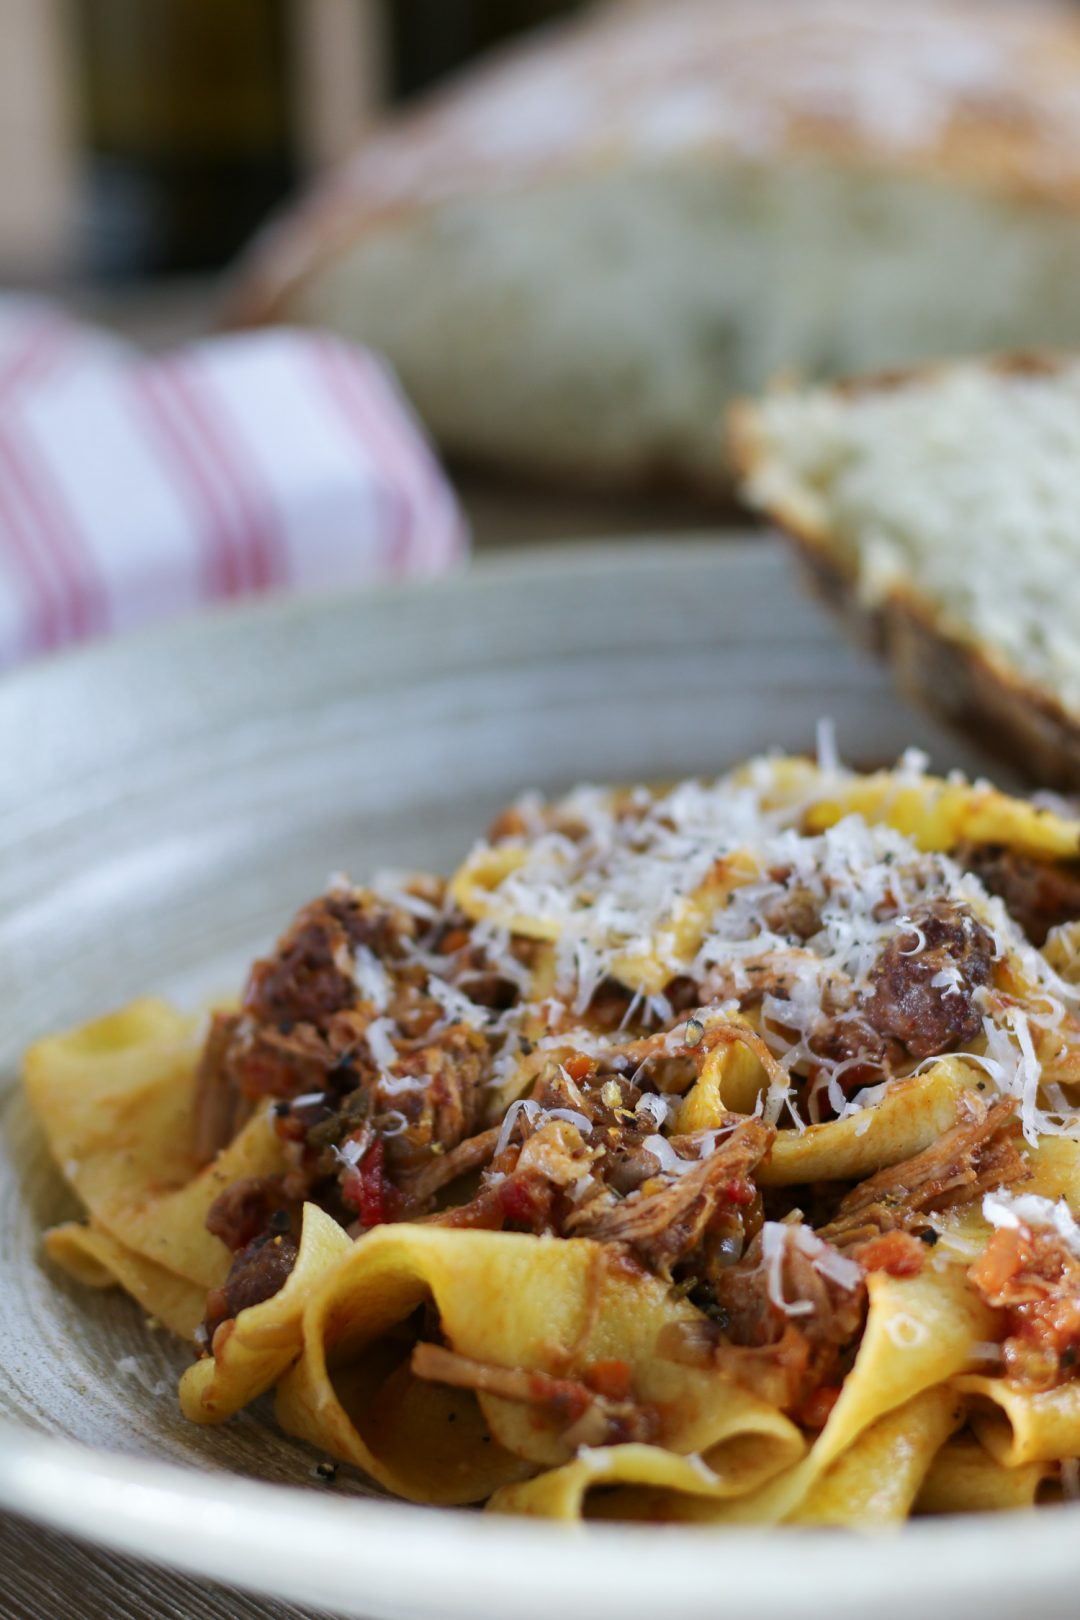 Braised Pork Ragu Papardelle with Parmesan